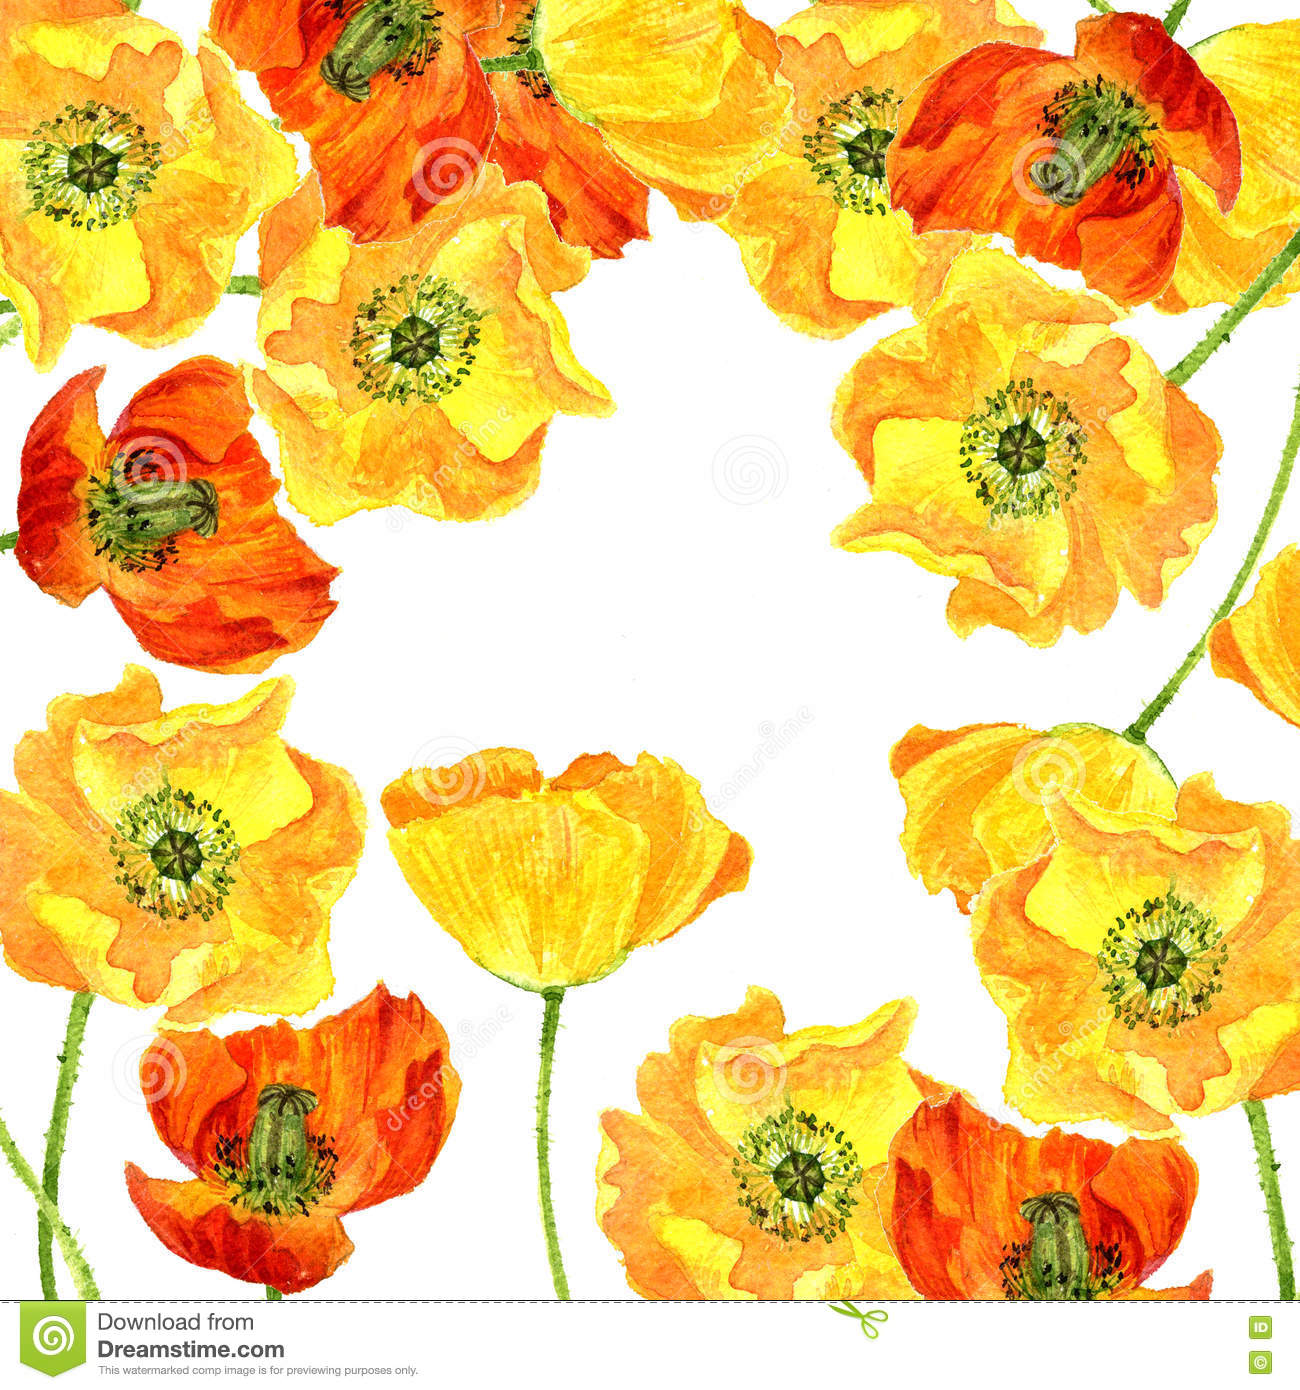 Watercolor Drawing Flowers Of Yellow Poppies Stock ...